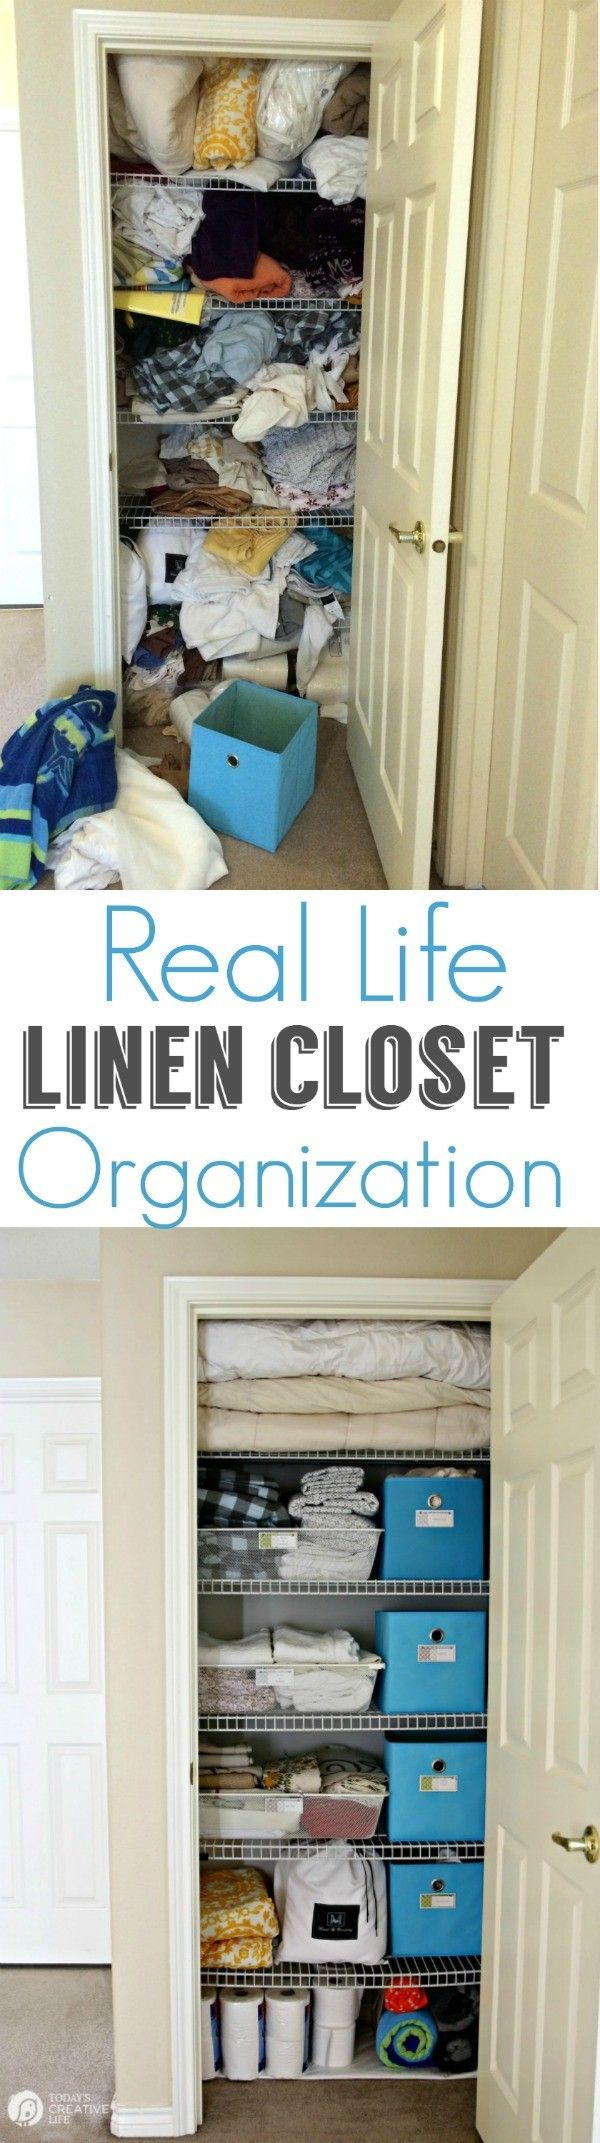 Organized Linen Closet For Real Life